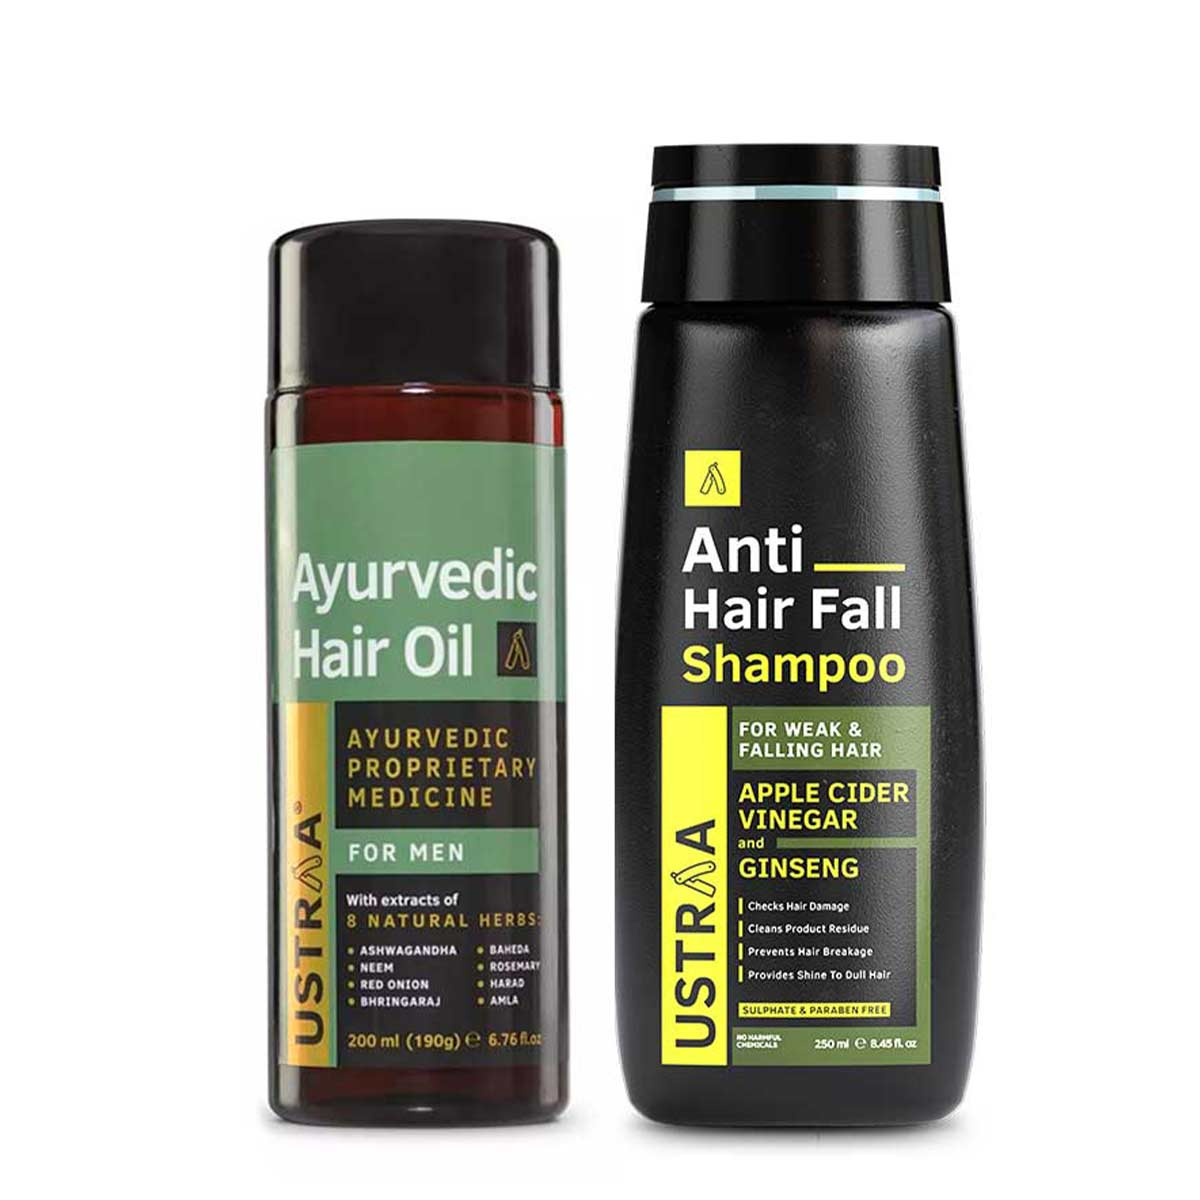 Ustraa Complete Hair Care Combo For Men | Ayurvedic Hair Oil and Anti Hair Fall Shampoo